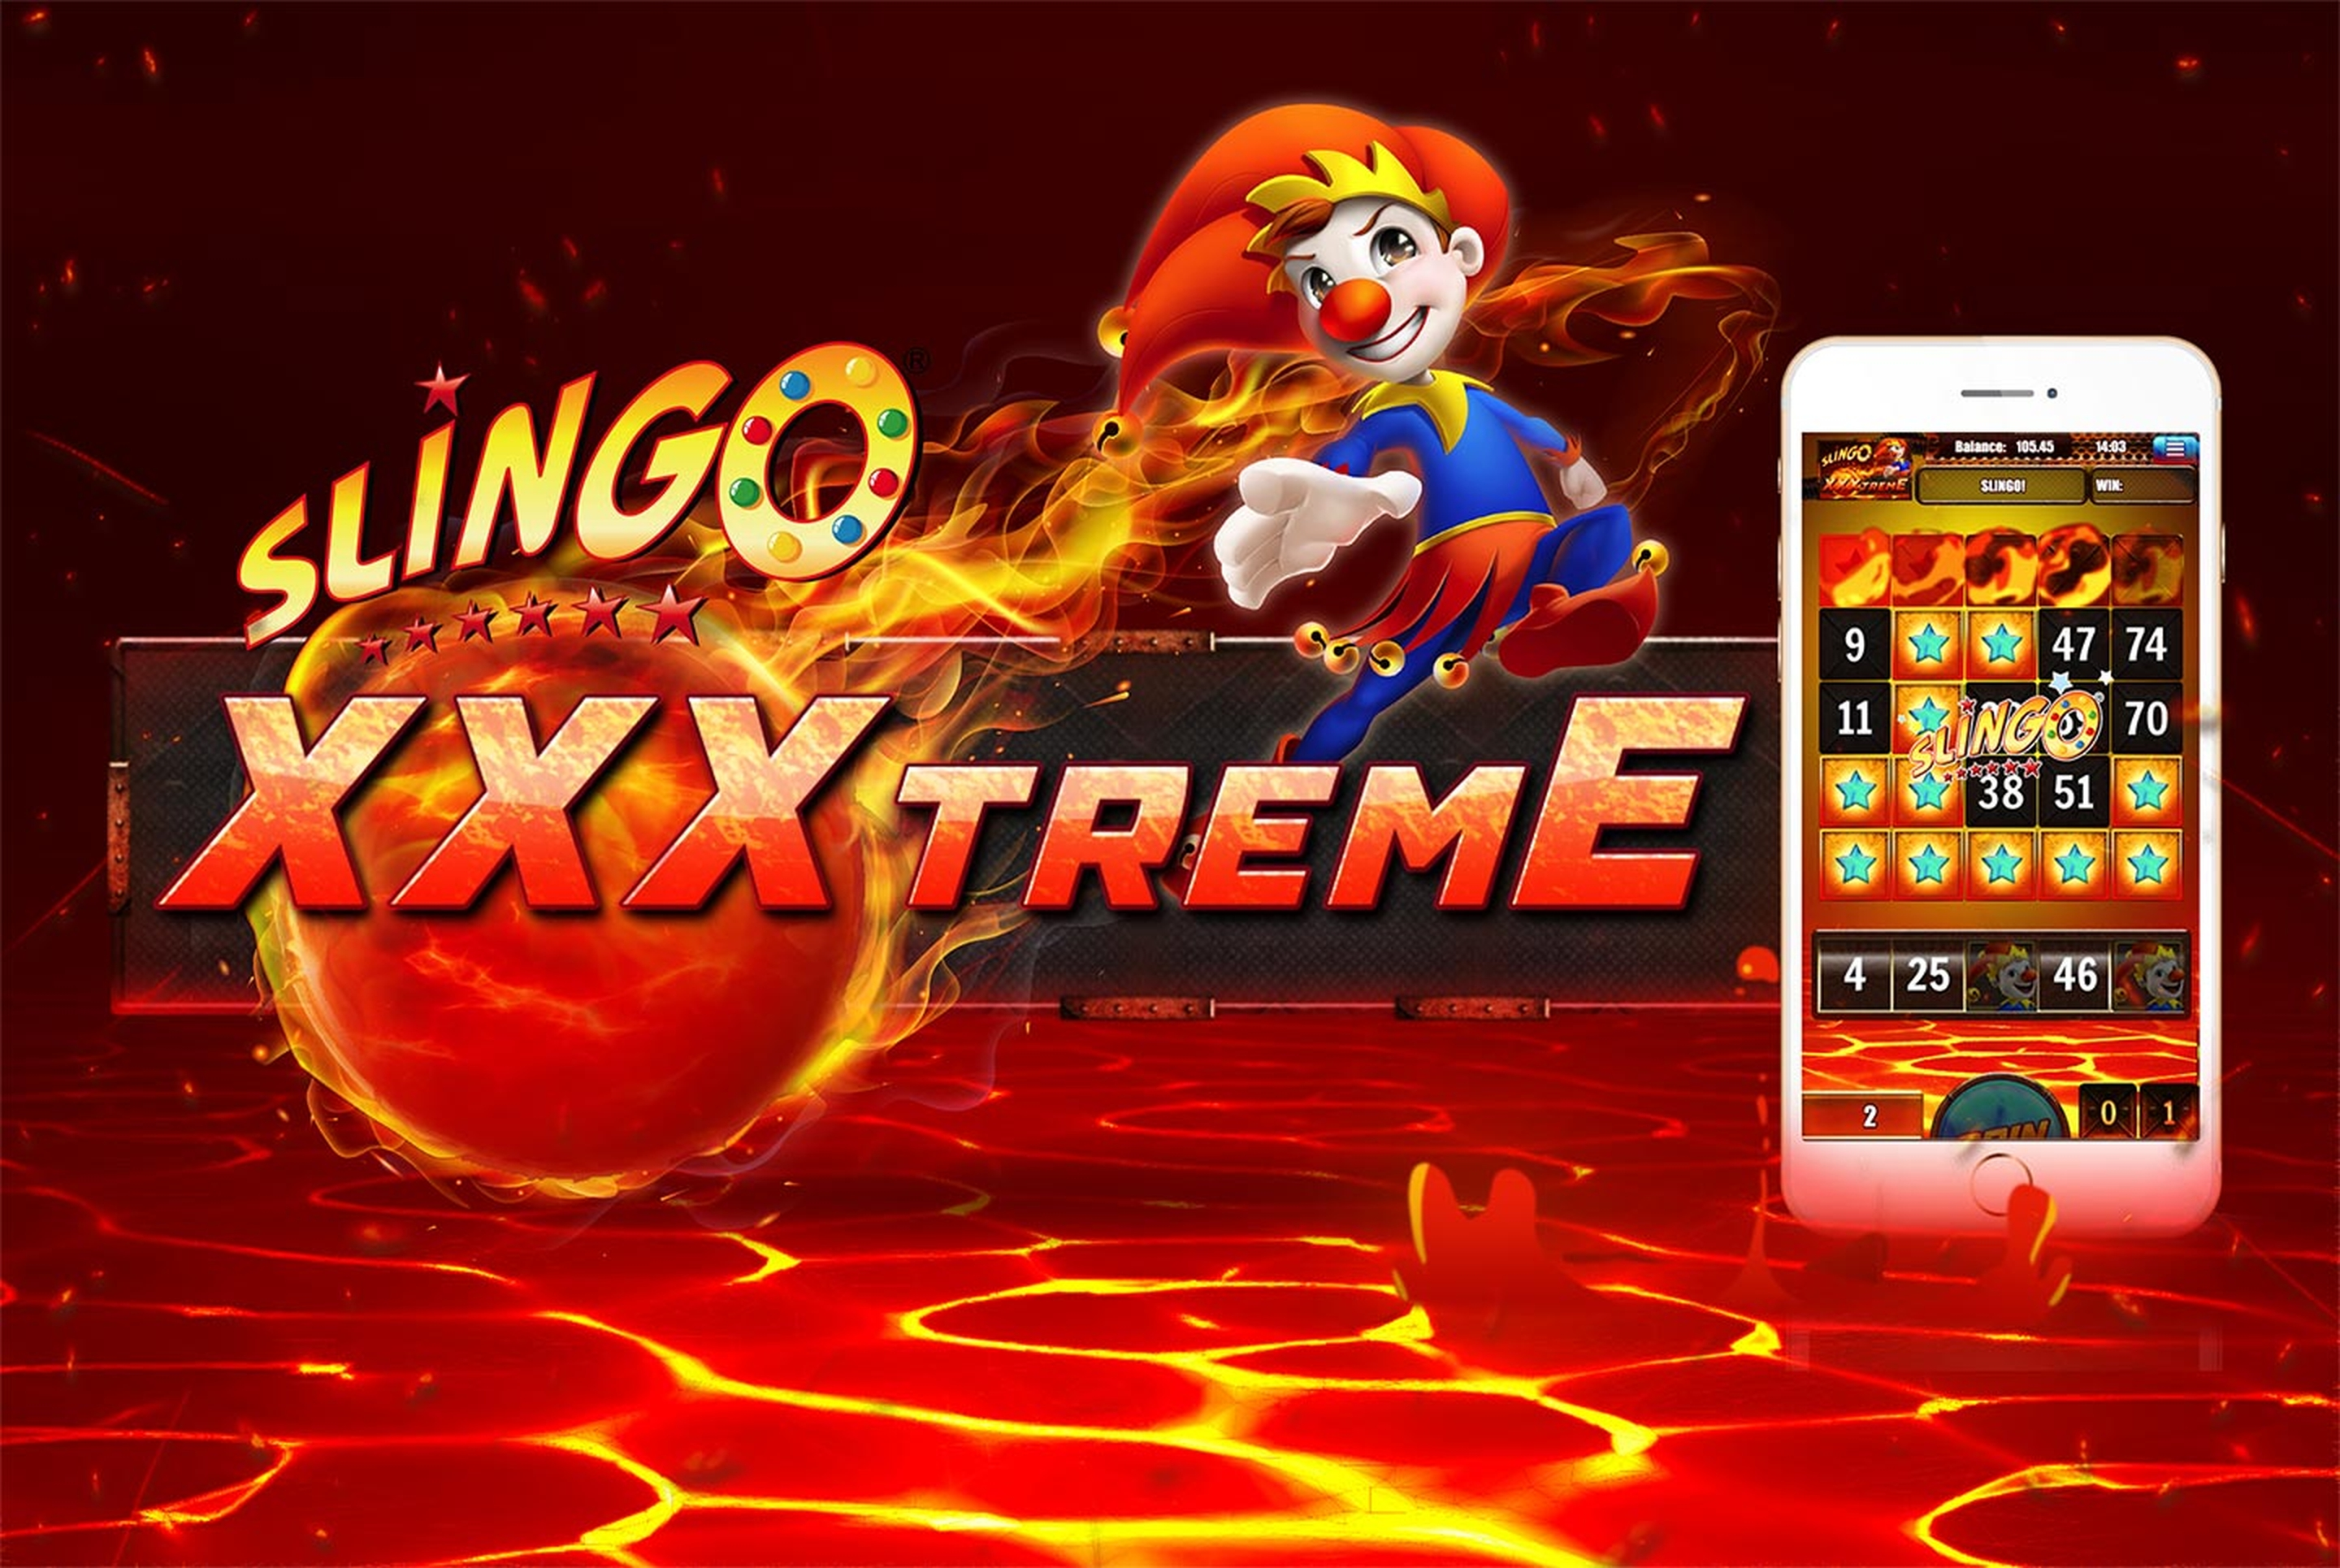 The Slingo XXXtreme Online Slot Demo Game by Slingo